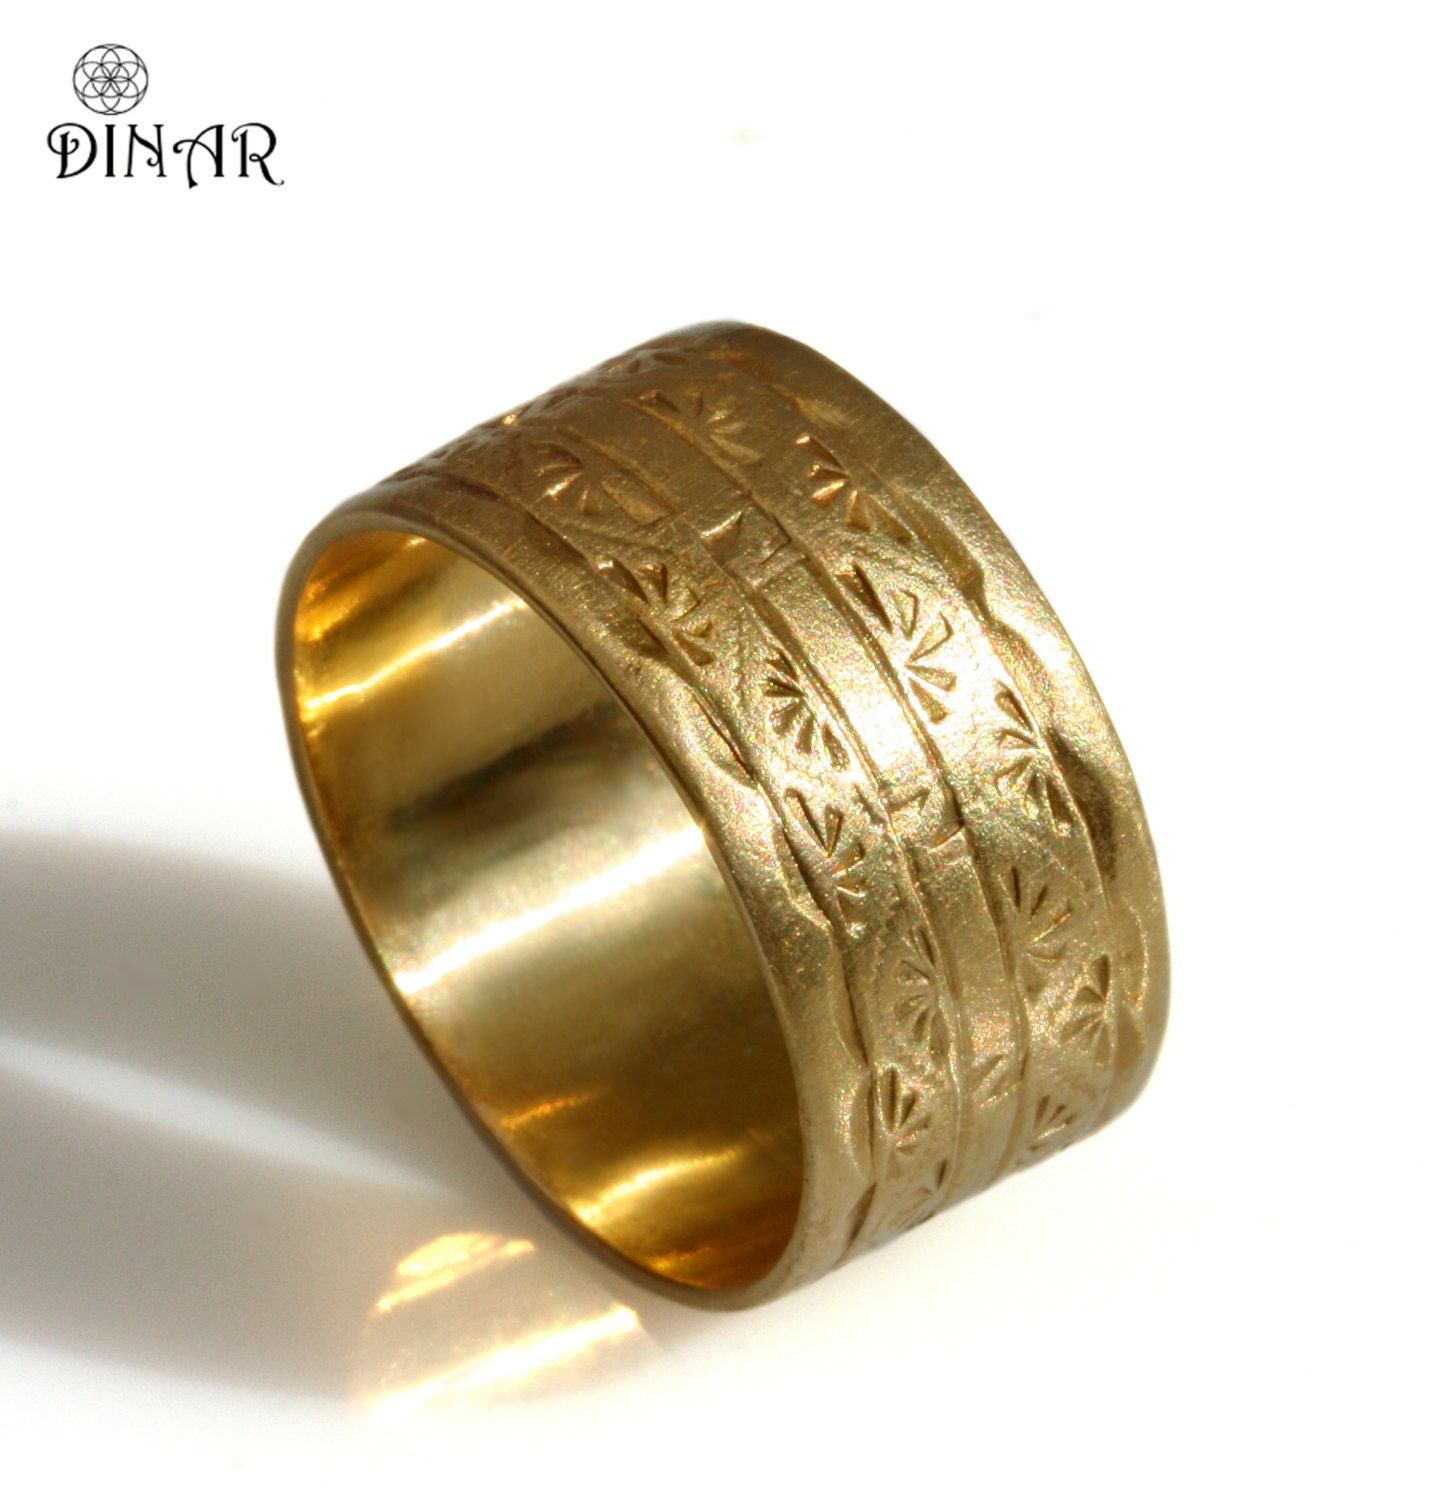 band wedding desktop ring main things gold size about download handphone by bands original mens know to men tablet